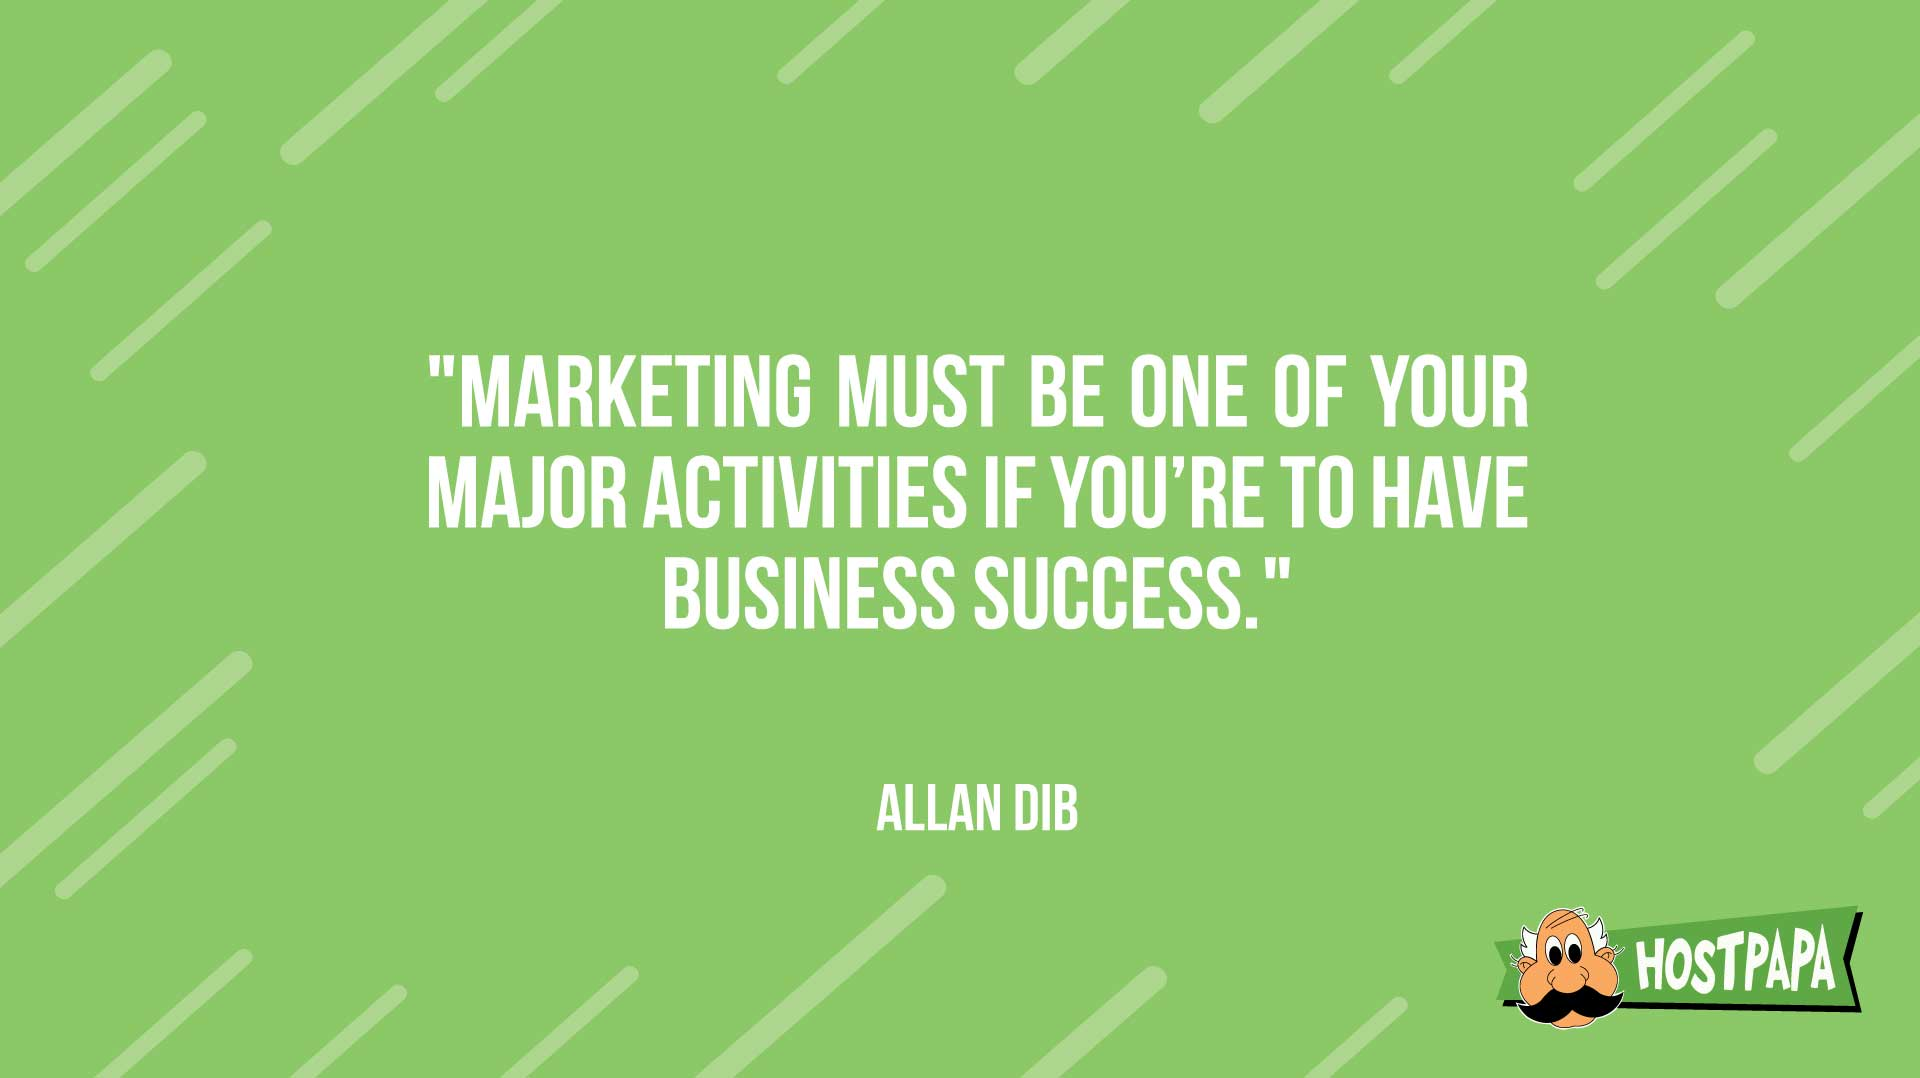 Marketing must be one of your major activities if you're to have business success